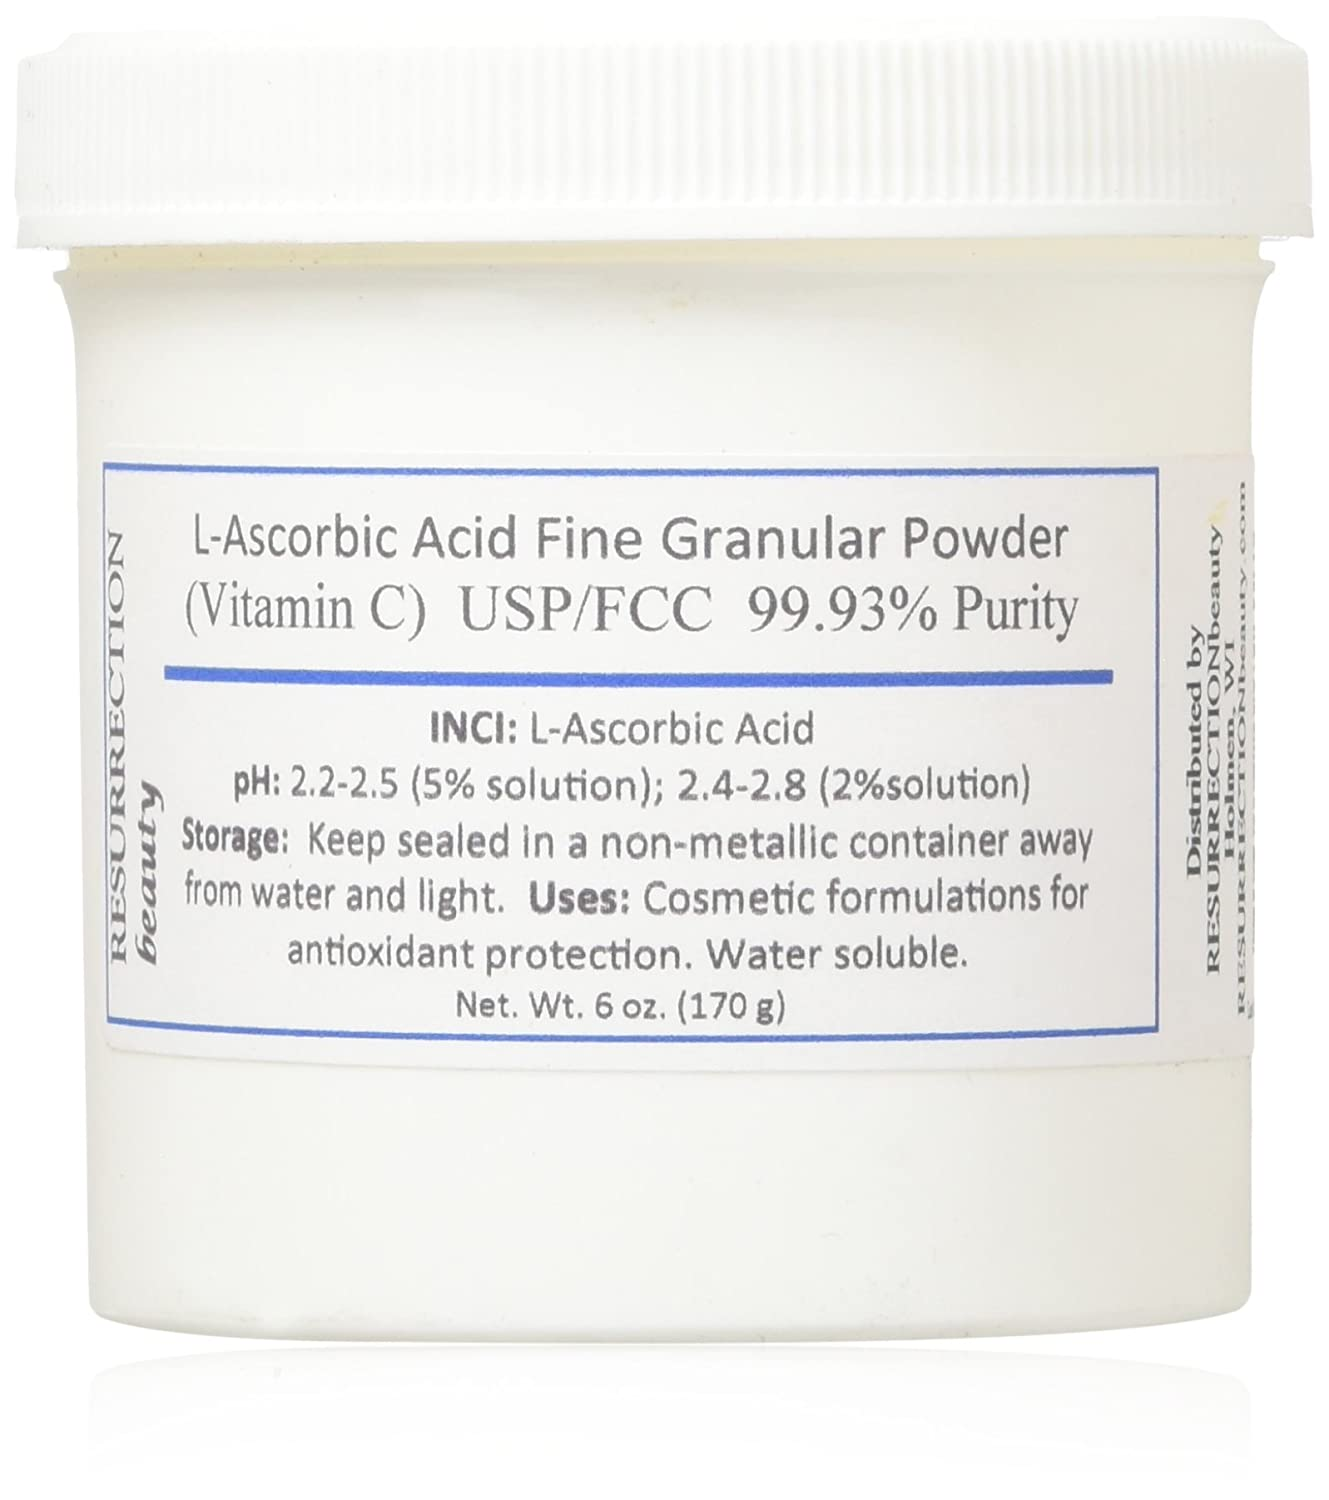 L-Ascorbic Acid Powder USP/FCC Grade (Vitamin C), 6 oz. Jar. For Use in Serums and Cosmetic Formulations USA NA